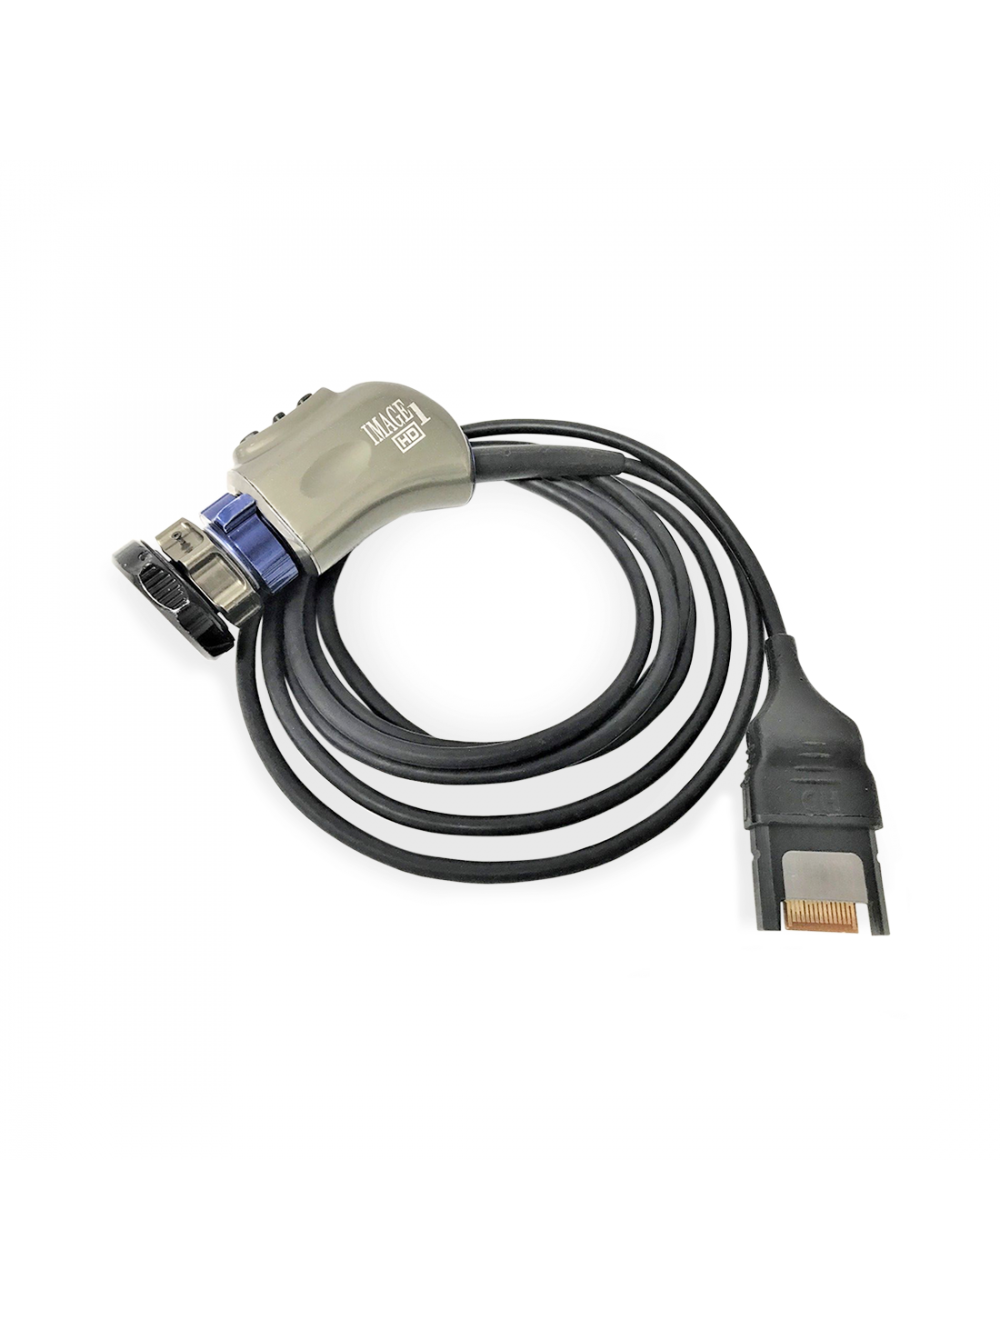 usb plug wire diagram schematic library RJ45 Connector Wiring Diagram usb plug diagram wiring diagram database